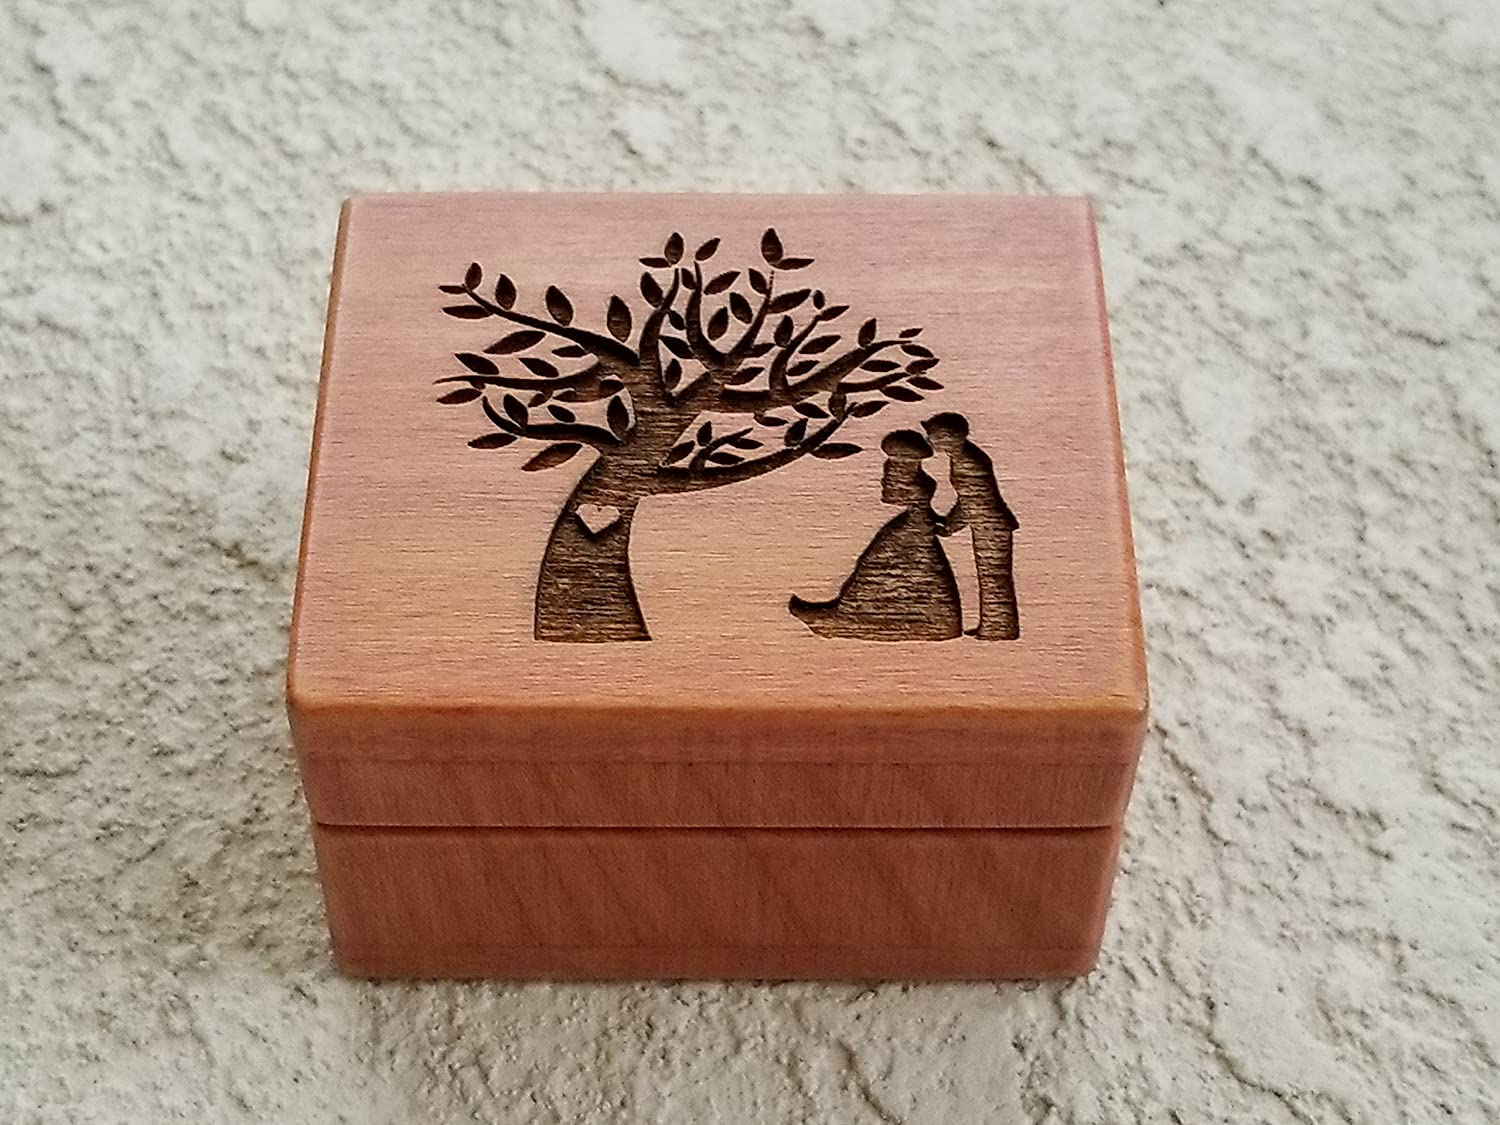 Custom engraved wooden ring box, wedding ring box, Will you marry me?, ring pillow alternative, handmade by Simplycoolgifts